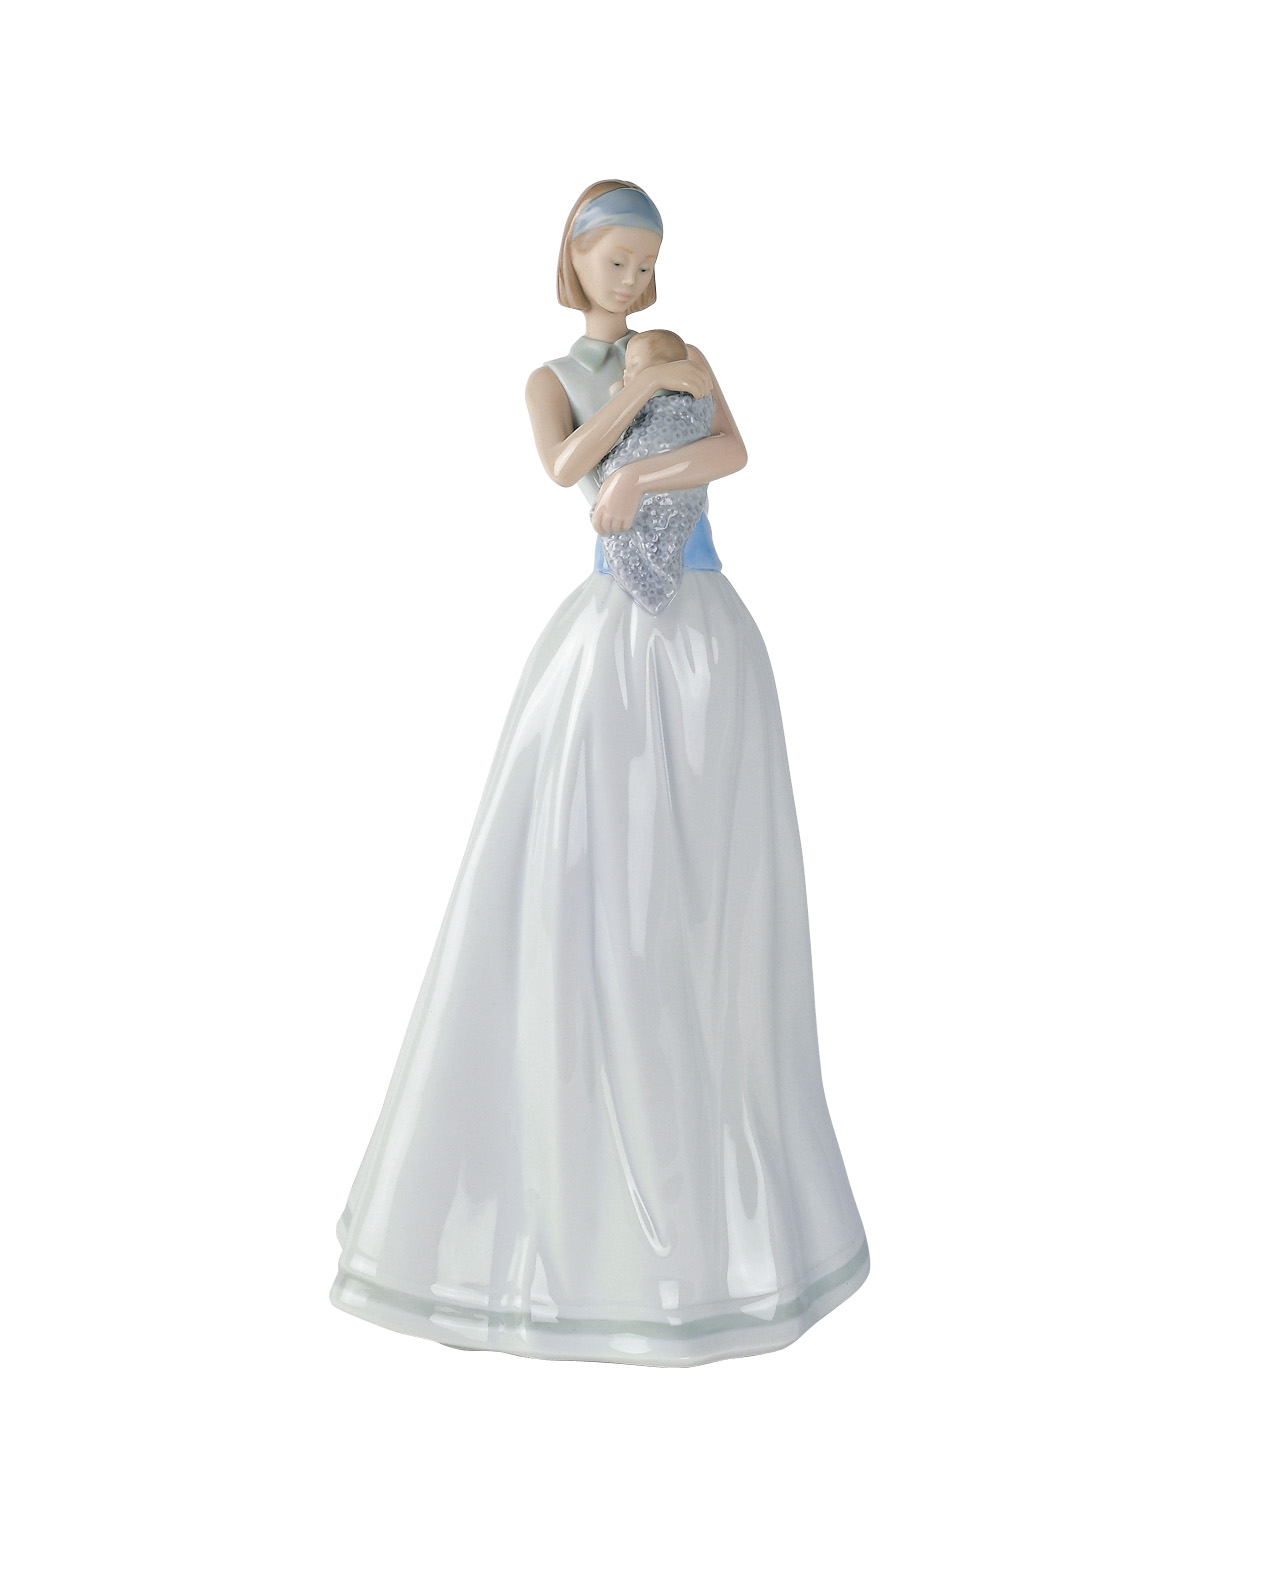 NAO Figure Joy Of My Life. Sculpture Decoration Breast, Mother's Day. Mother of Porcelain image